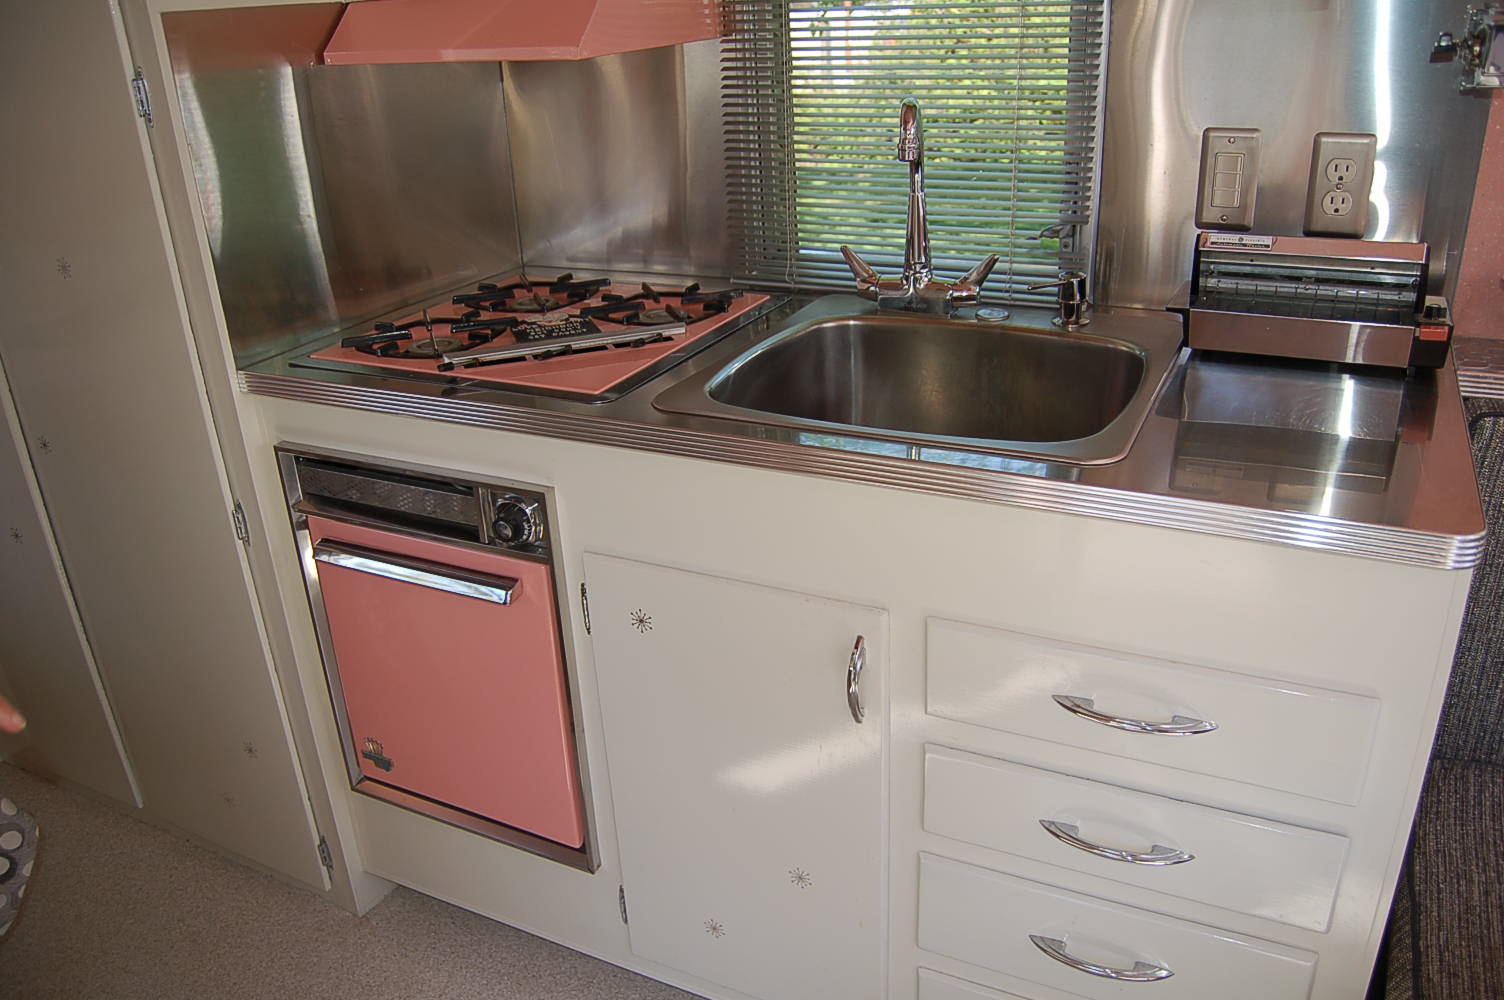 vintage holiday house trailer pictures stainless steel kitchen countertops Photo of kitchen cabinets and amazing stainless steel counter top in Holiday House vintage trailer